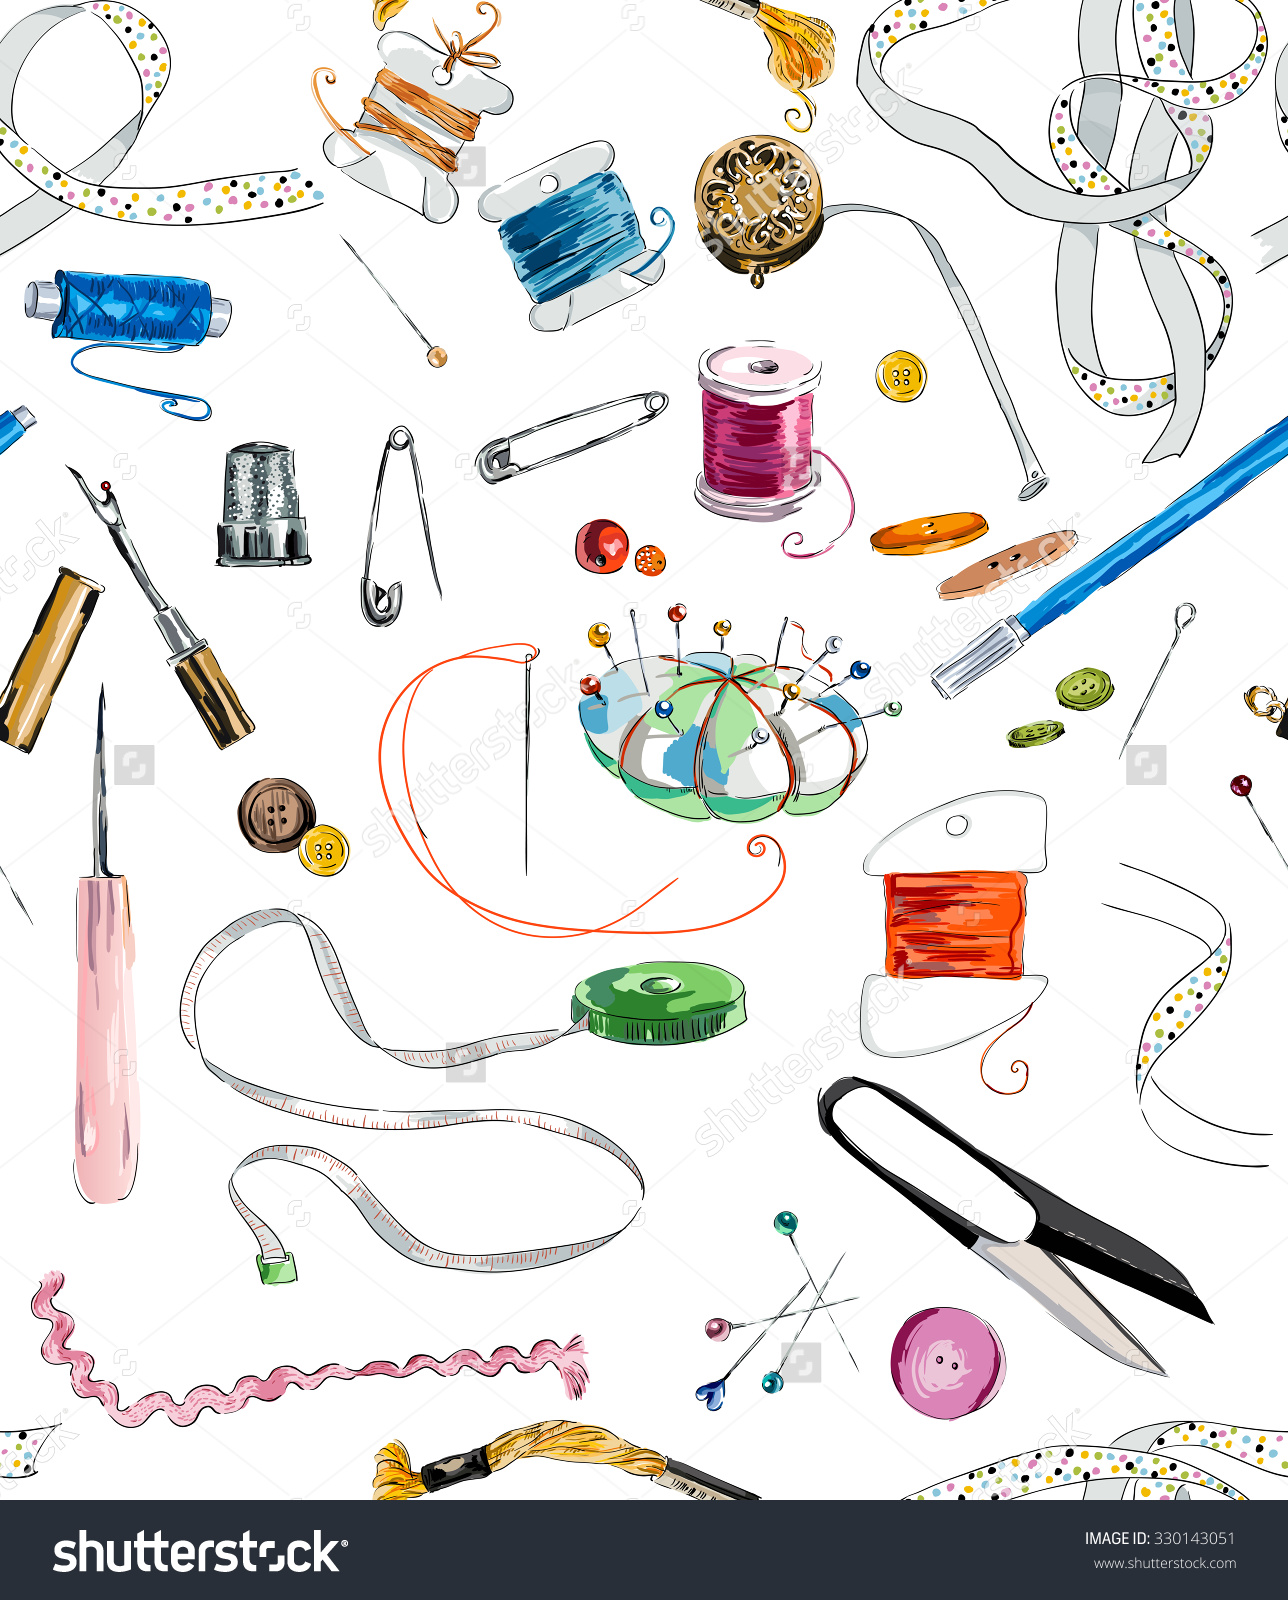 Tools And Equipment In Sewing.